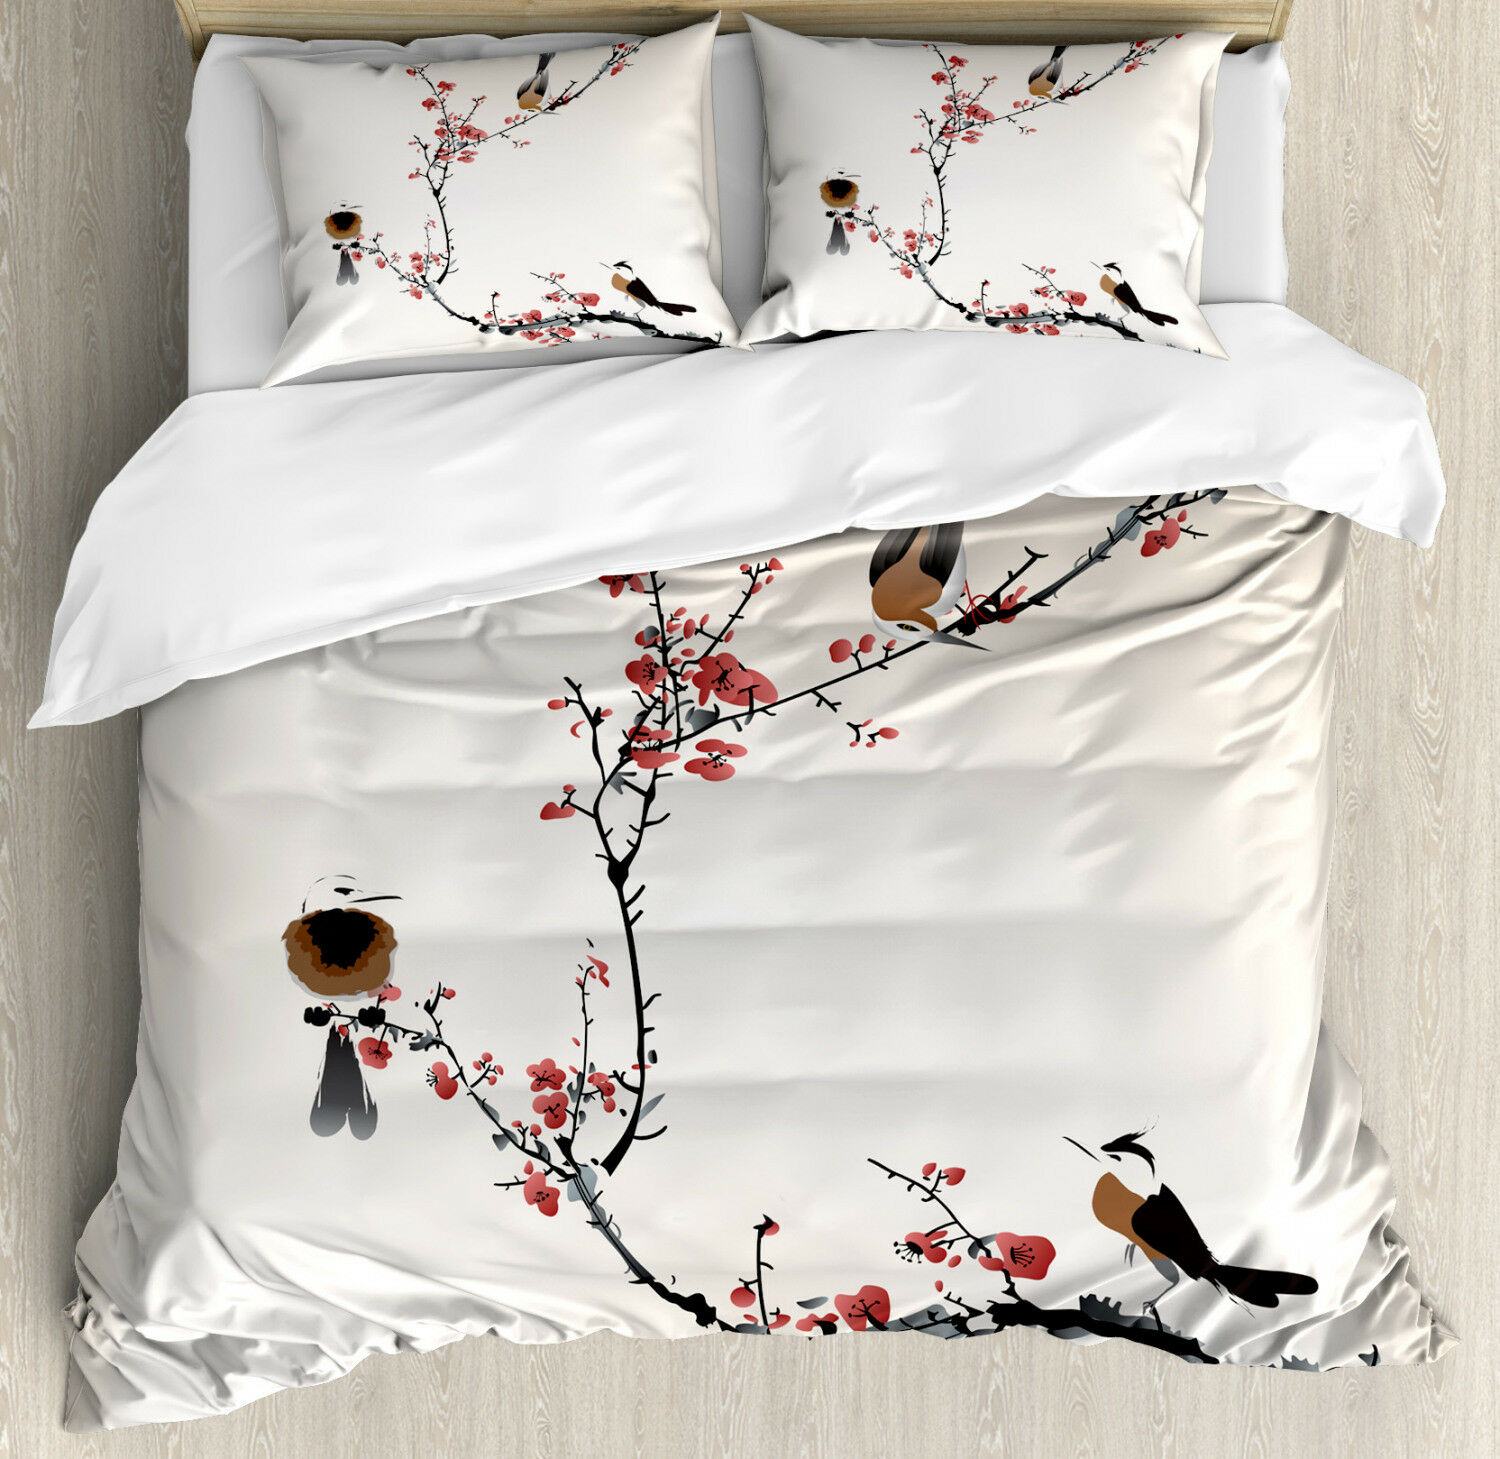 Tree Duvet Cover Set with Pillow Shams Oriental Artful Illustration Print